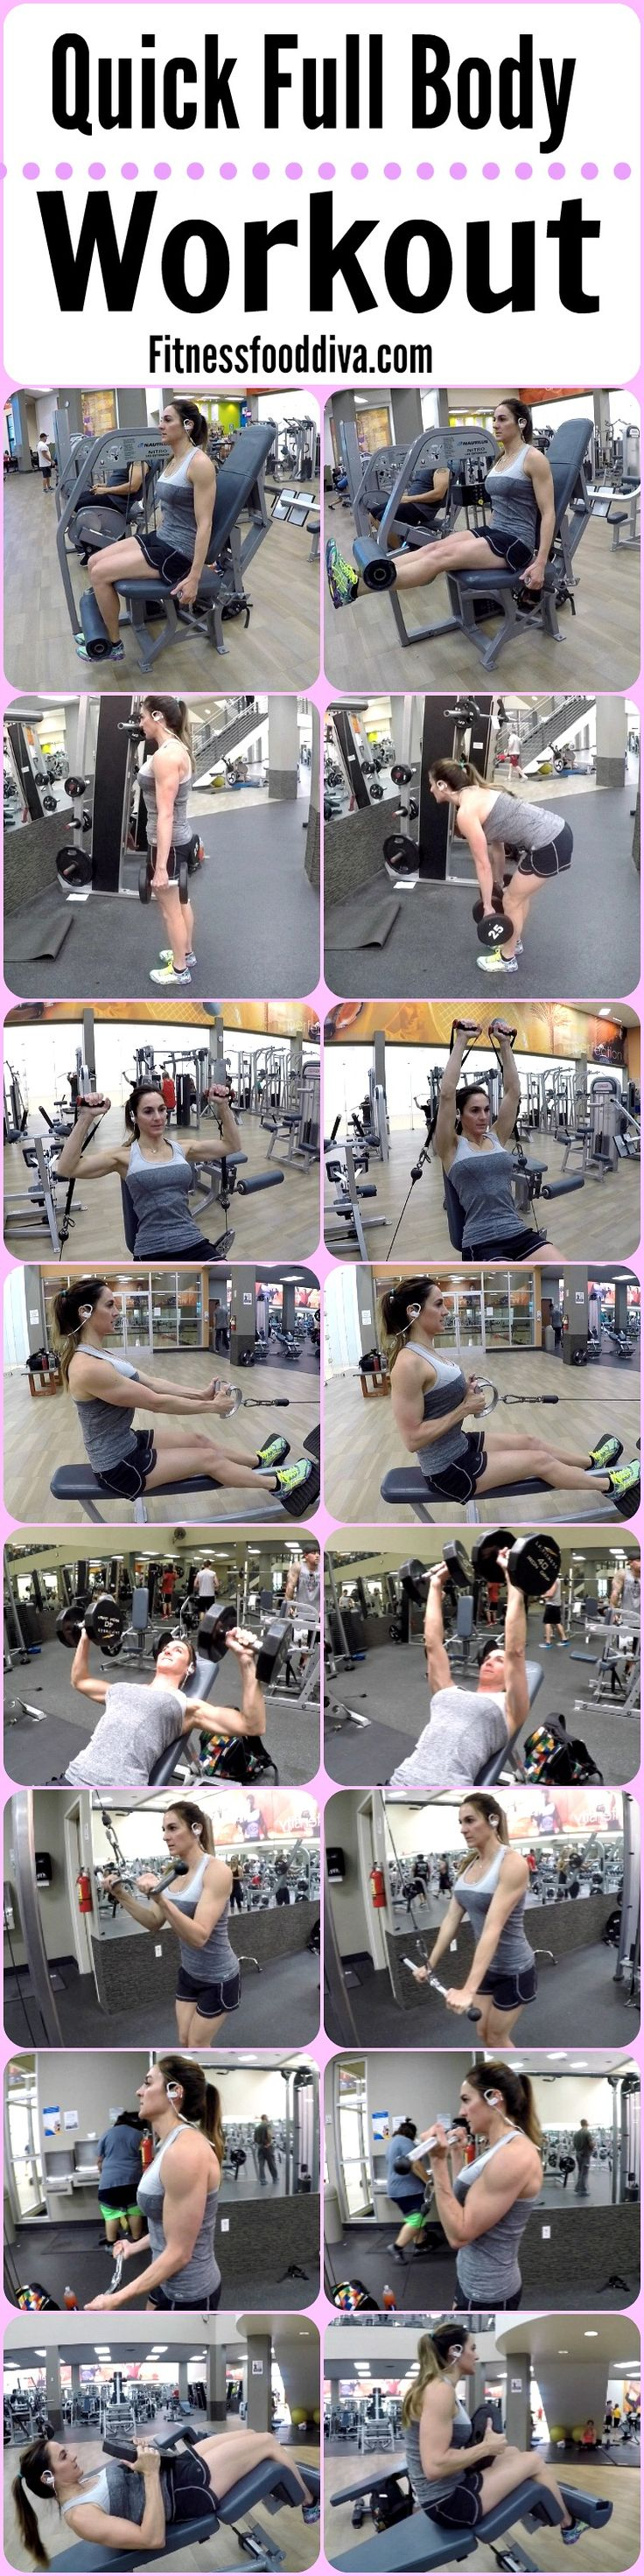 This is a great Full Body Workout that will have you in and out of the gym fast!